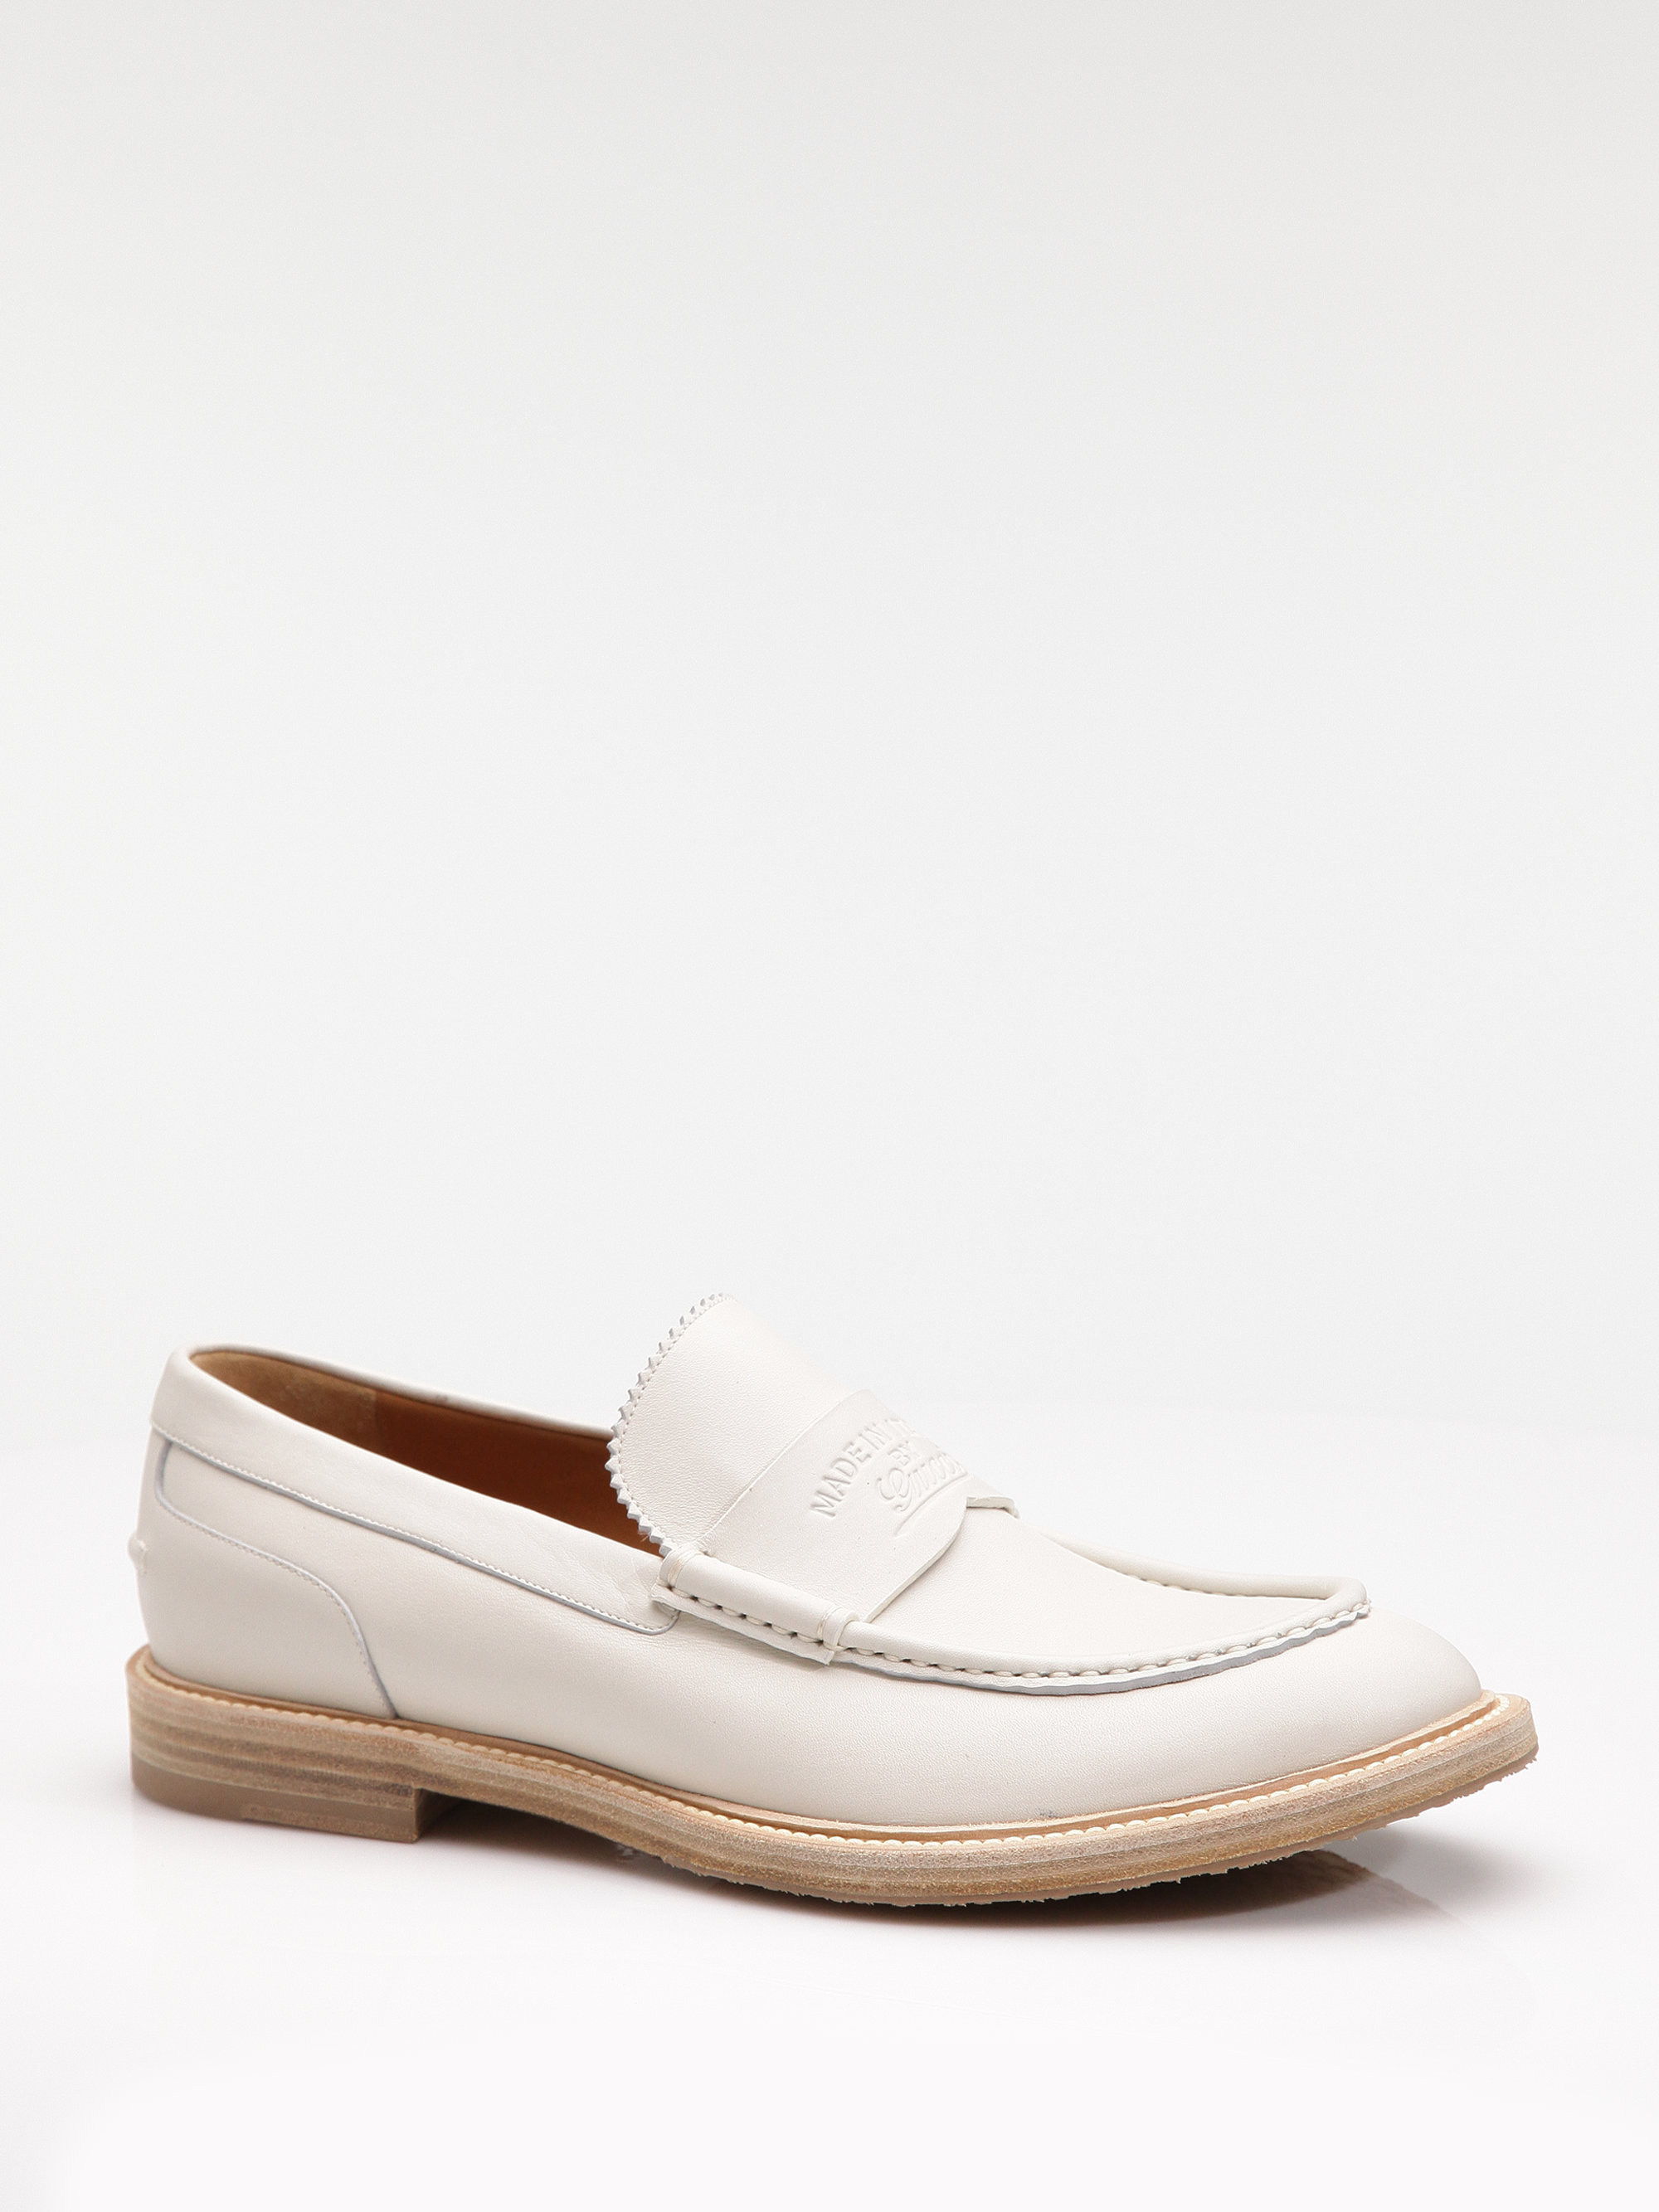 Gucci Loafer In White For Men Lyst